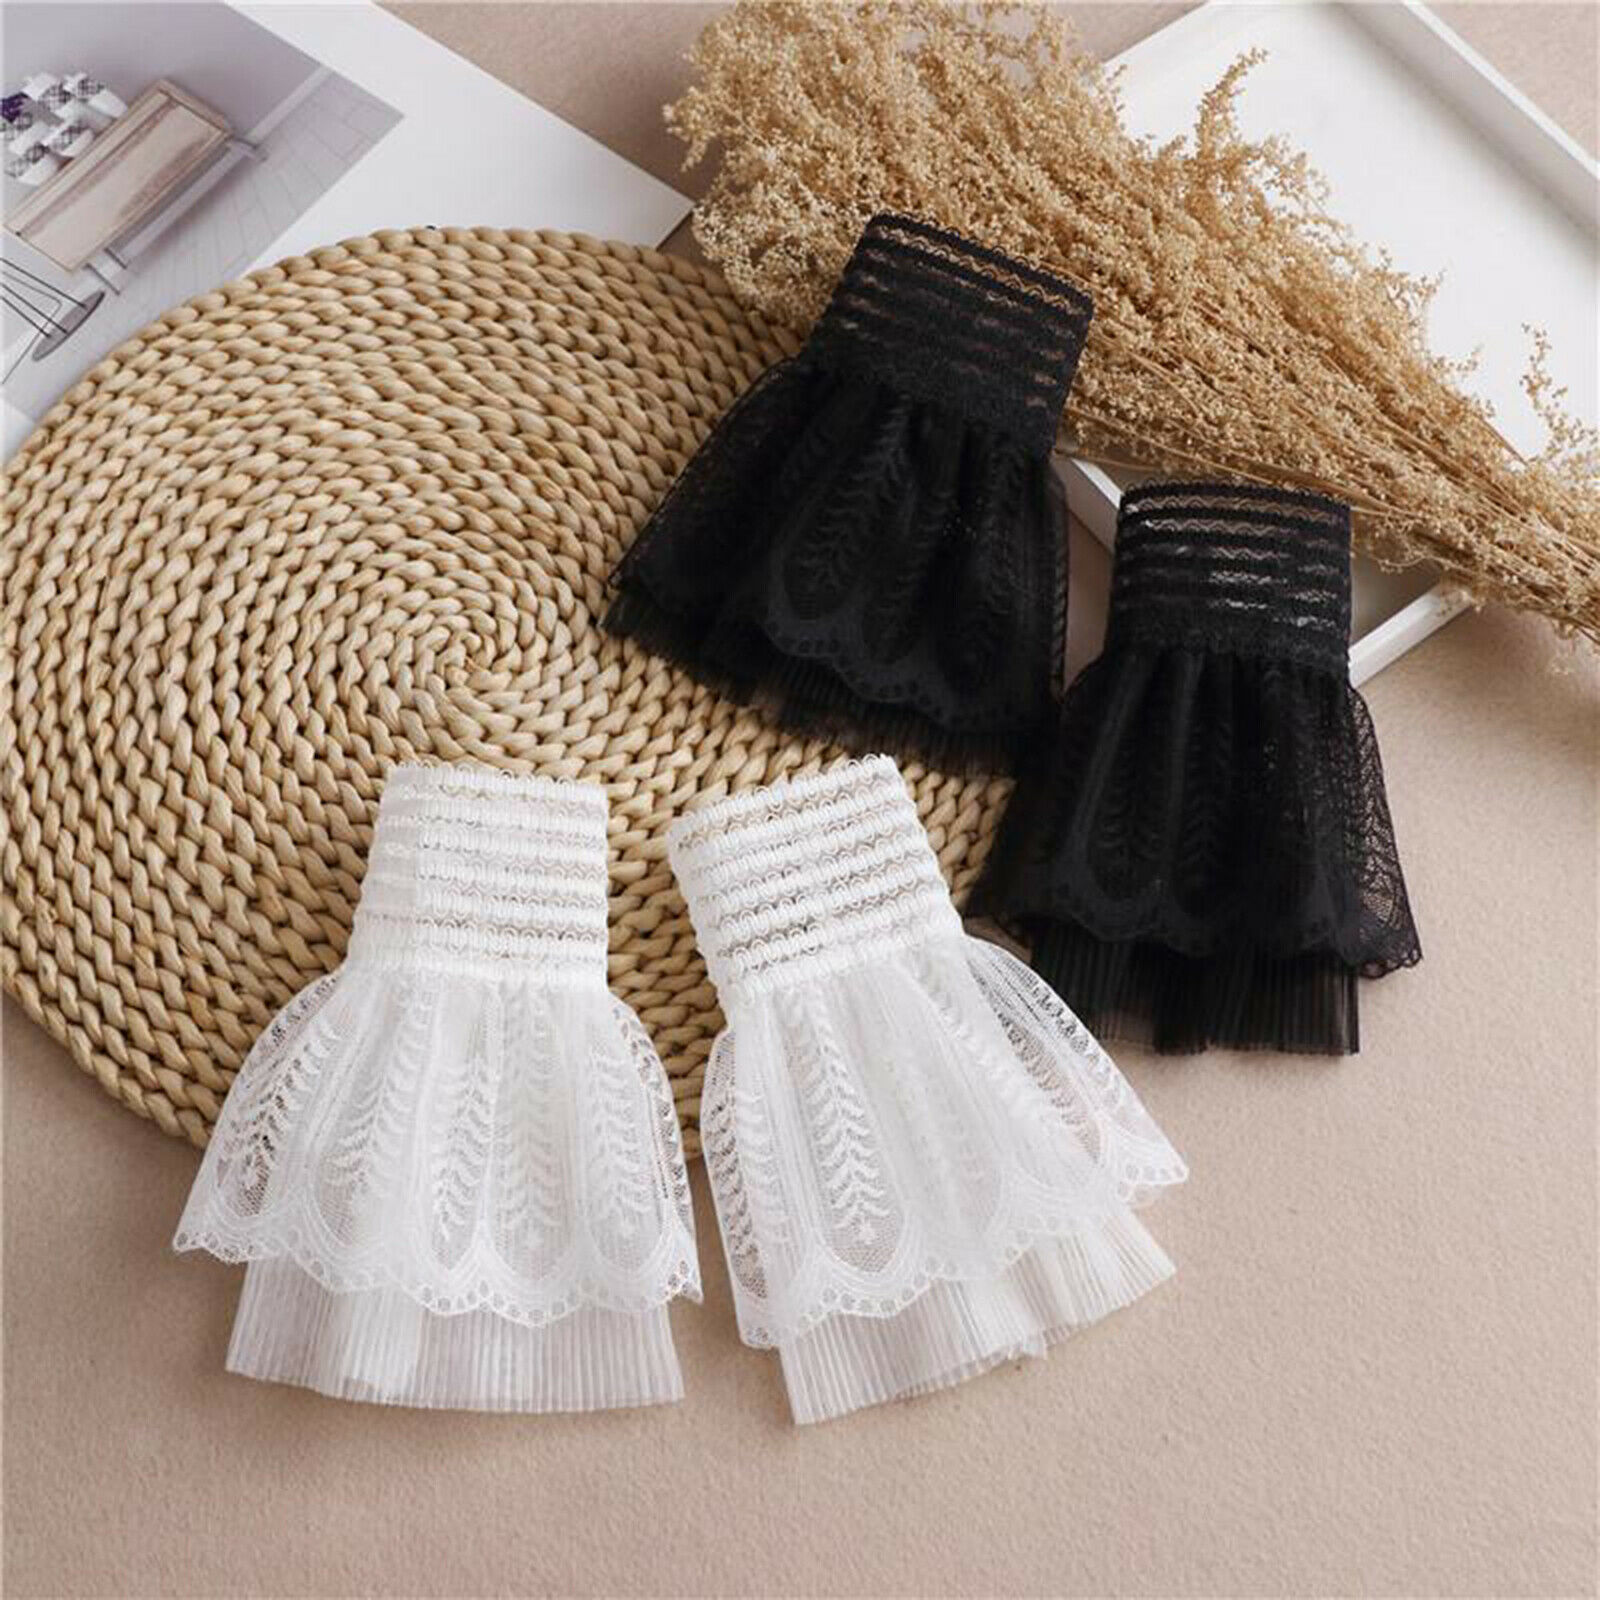 Womens Lace Cuffs Clothing Universal Ruched Fake Sleeves False Wrist Accessory